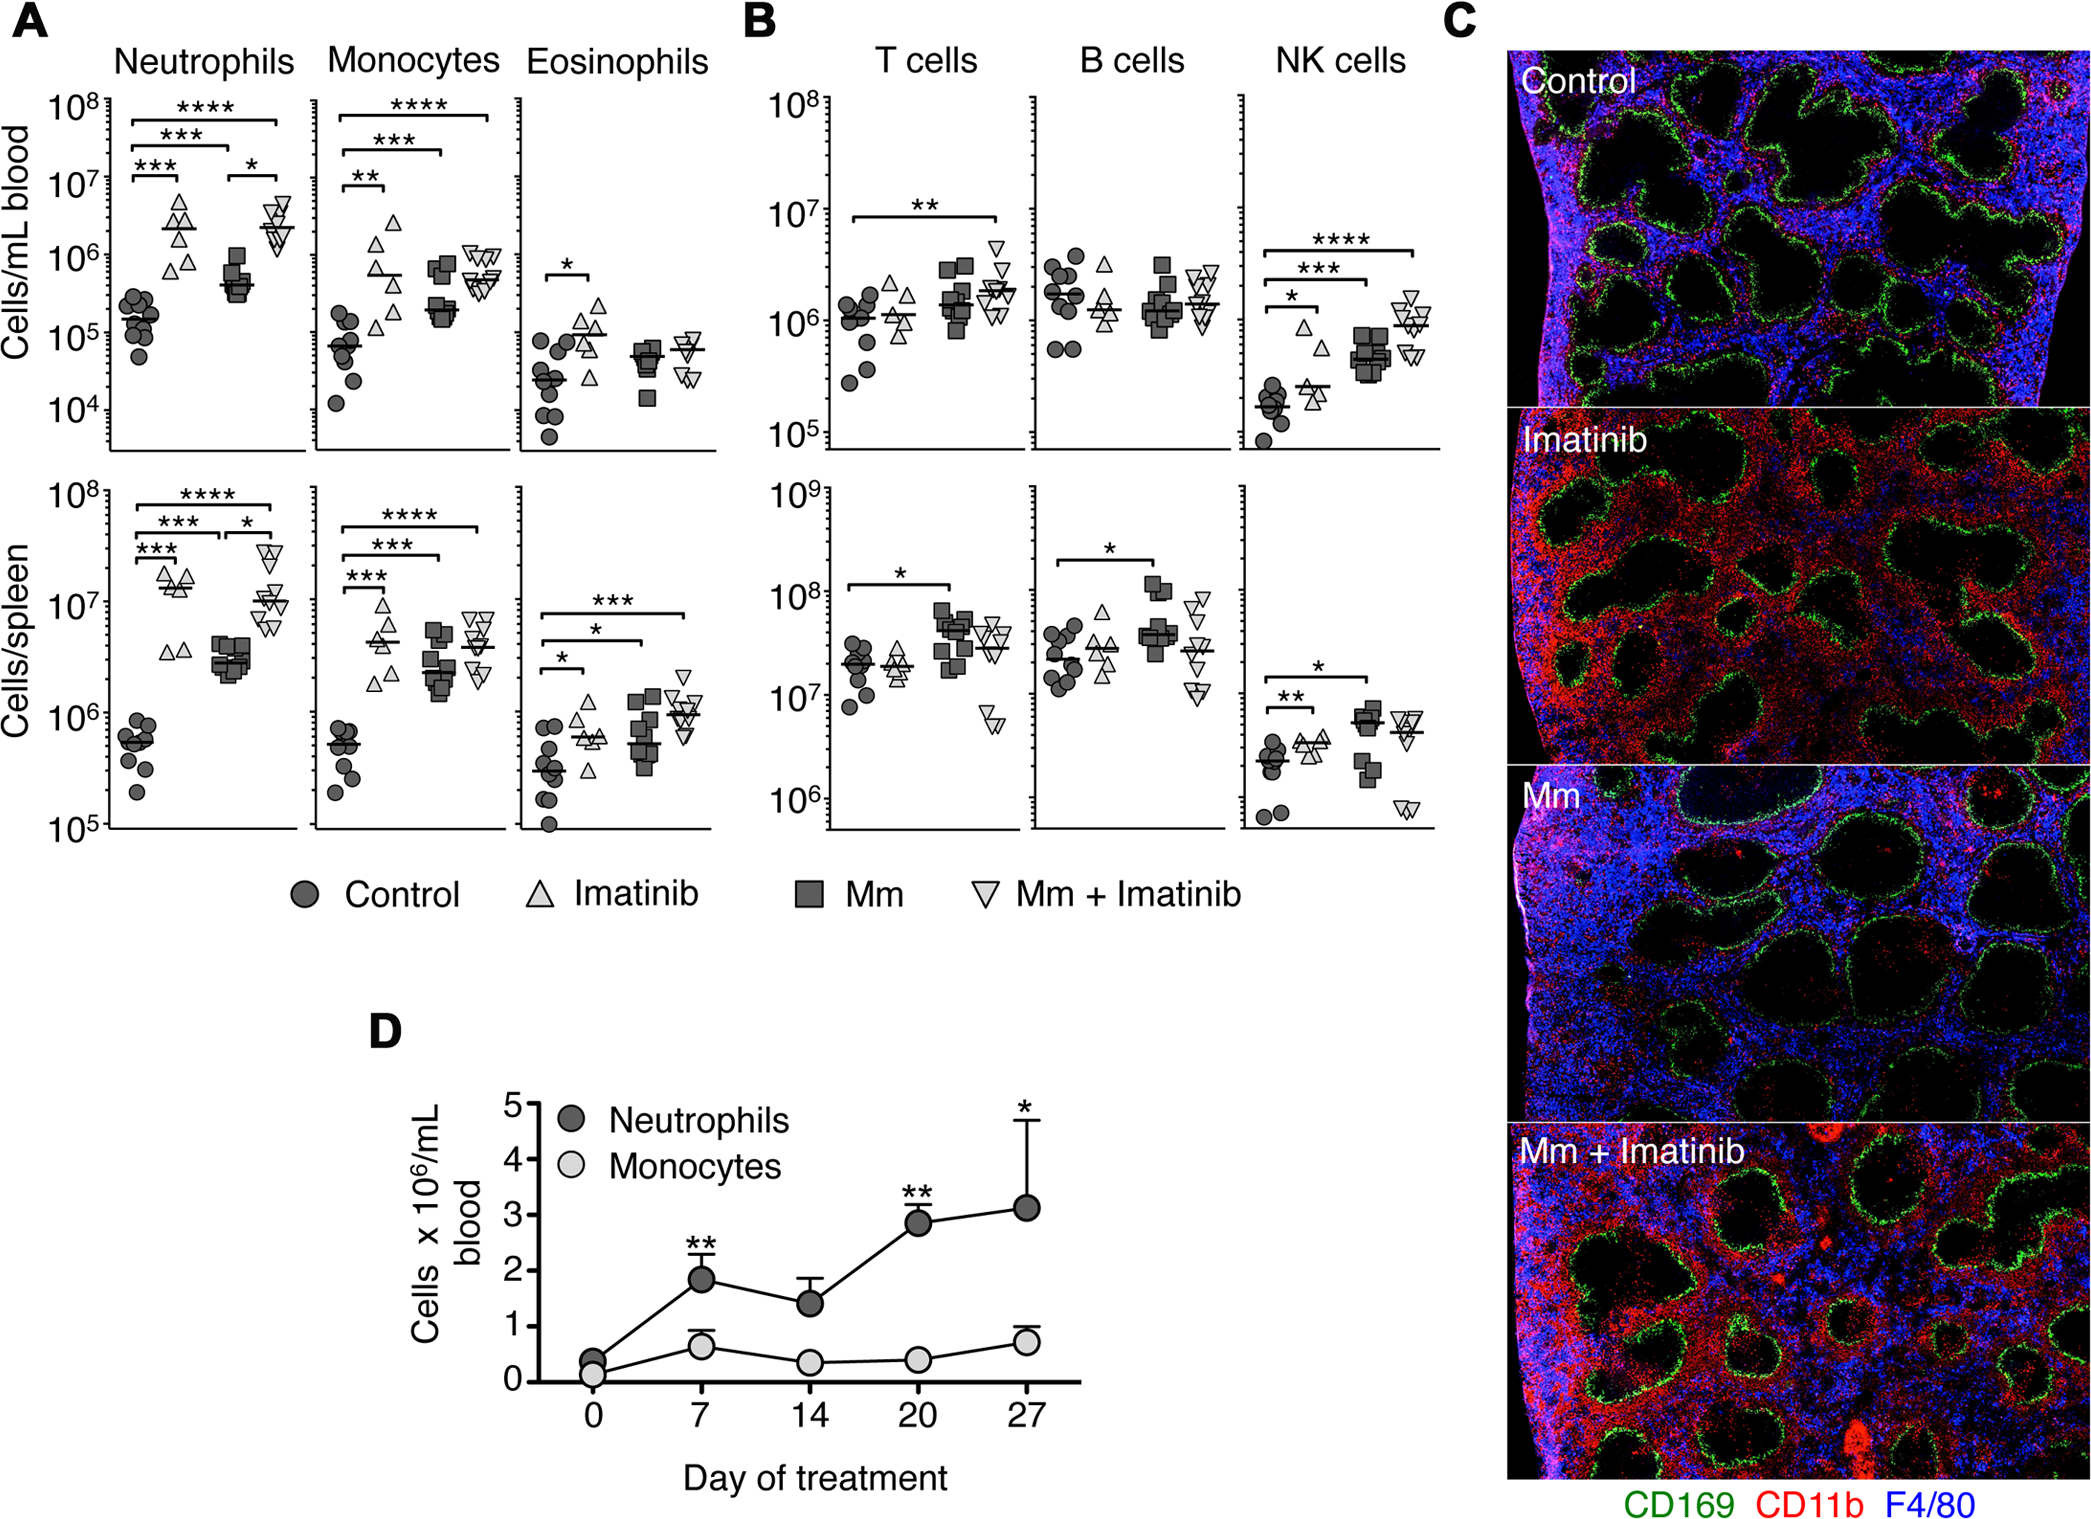 Imatinib treatment induces expansion of myeloid cells in mouse spleen and blood.